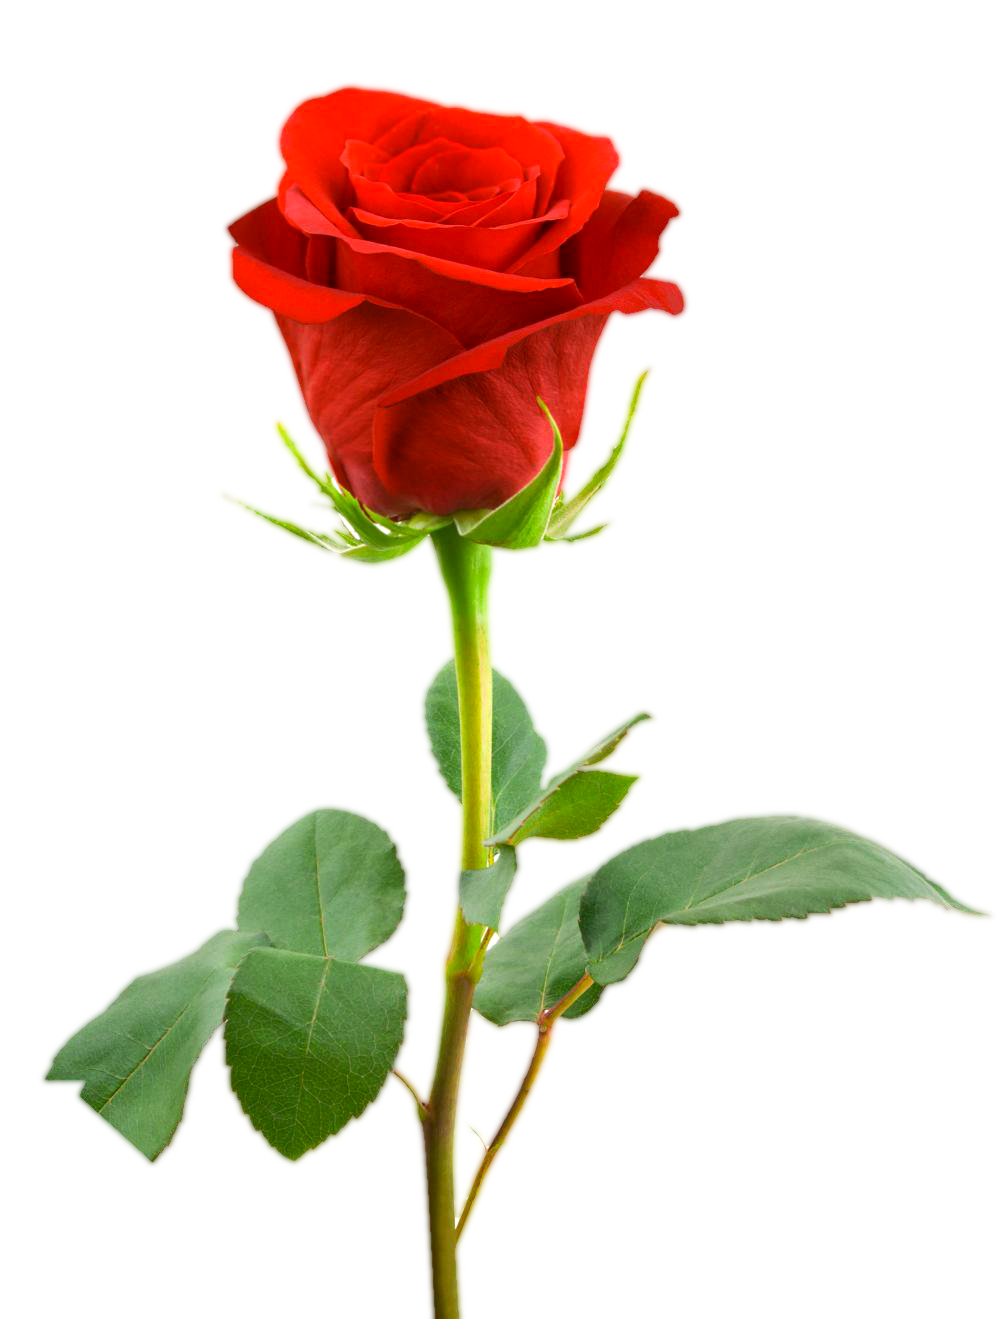 Png rose. Valentine red collection trasnsparent